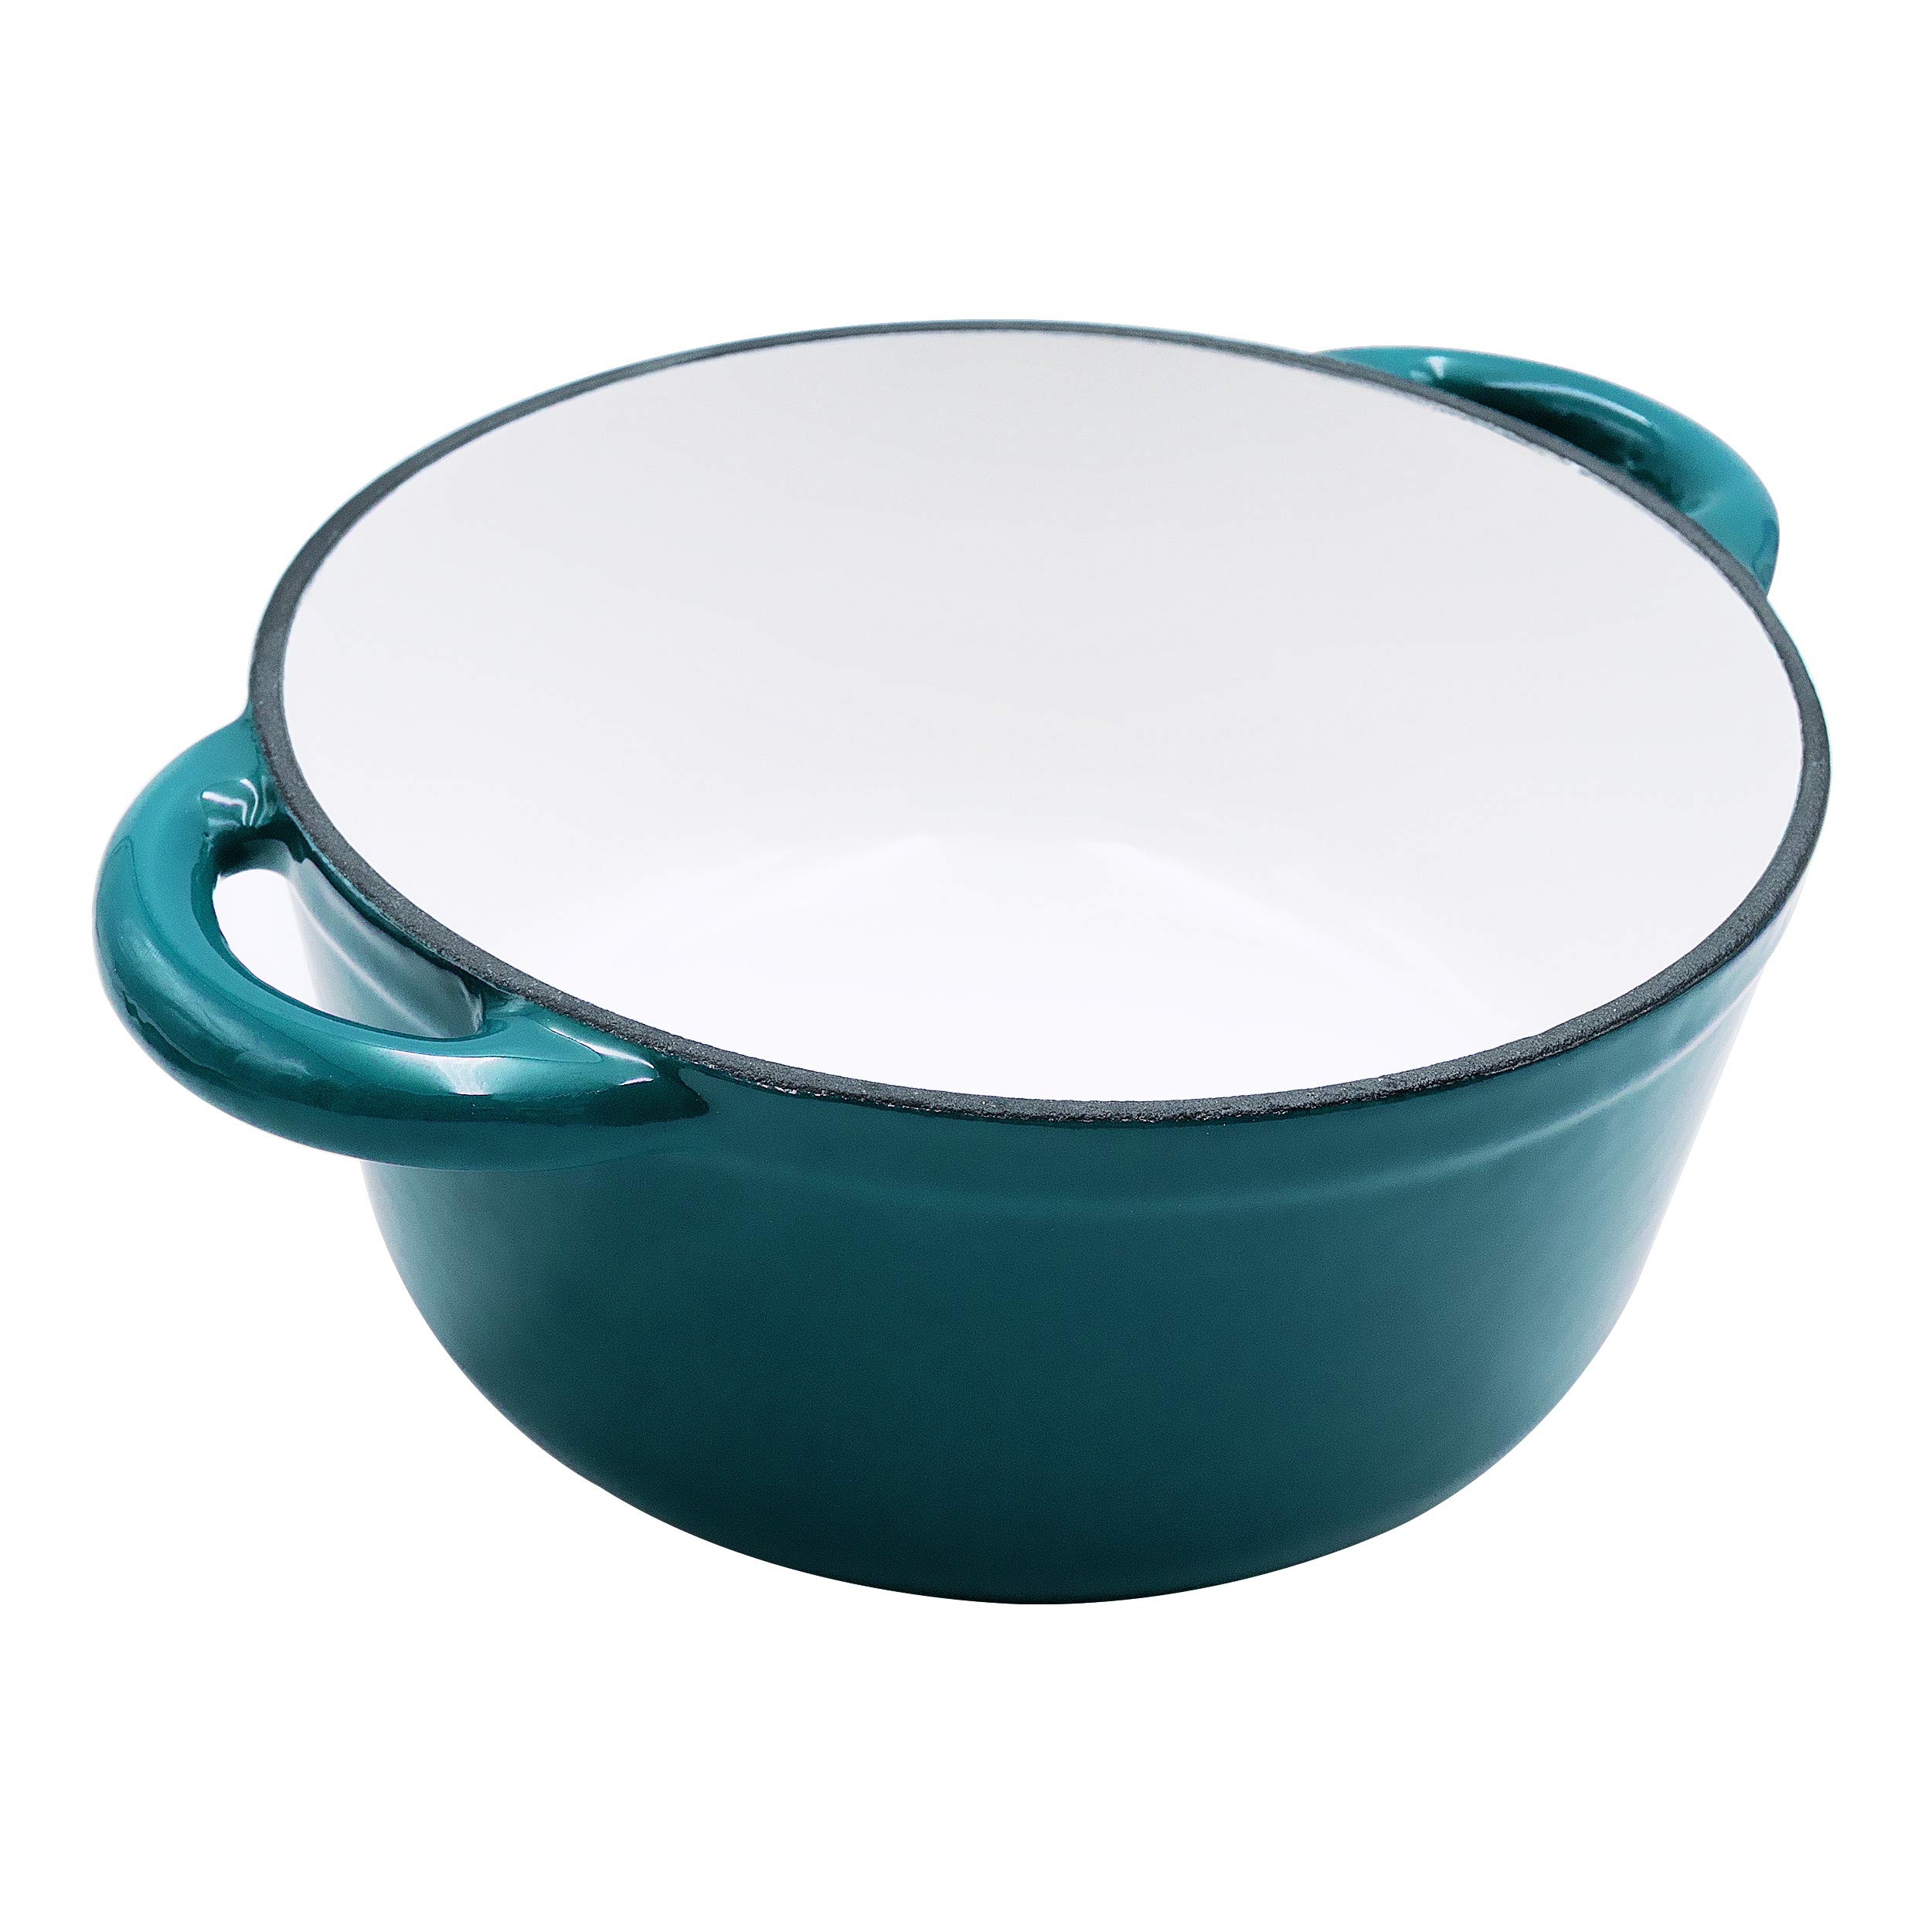 Enameled Cast Iron Dutch Oven - 5-Quart Turquoise Blue Round Ceramic Coated Cookware French Oven with Self Basting Lid by AIDEA by AIDEA (Image #4)